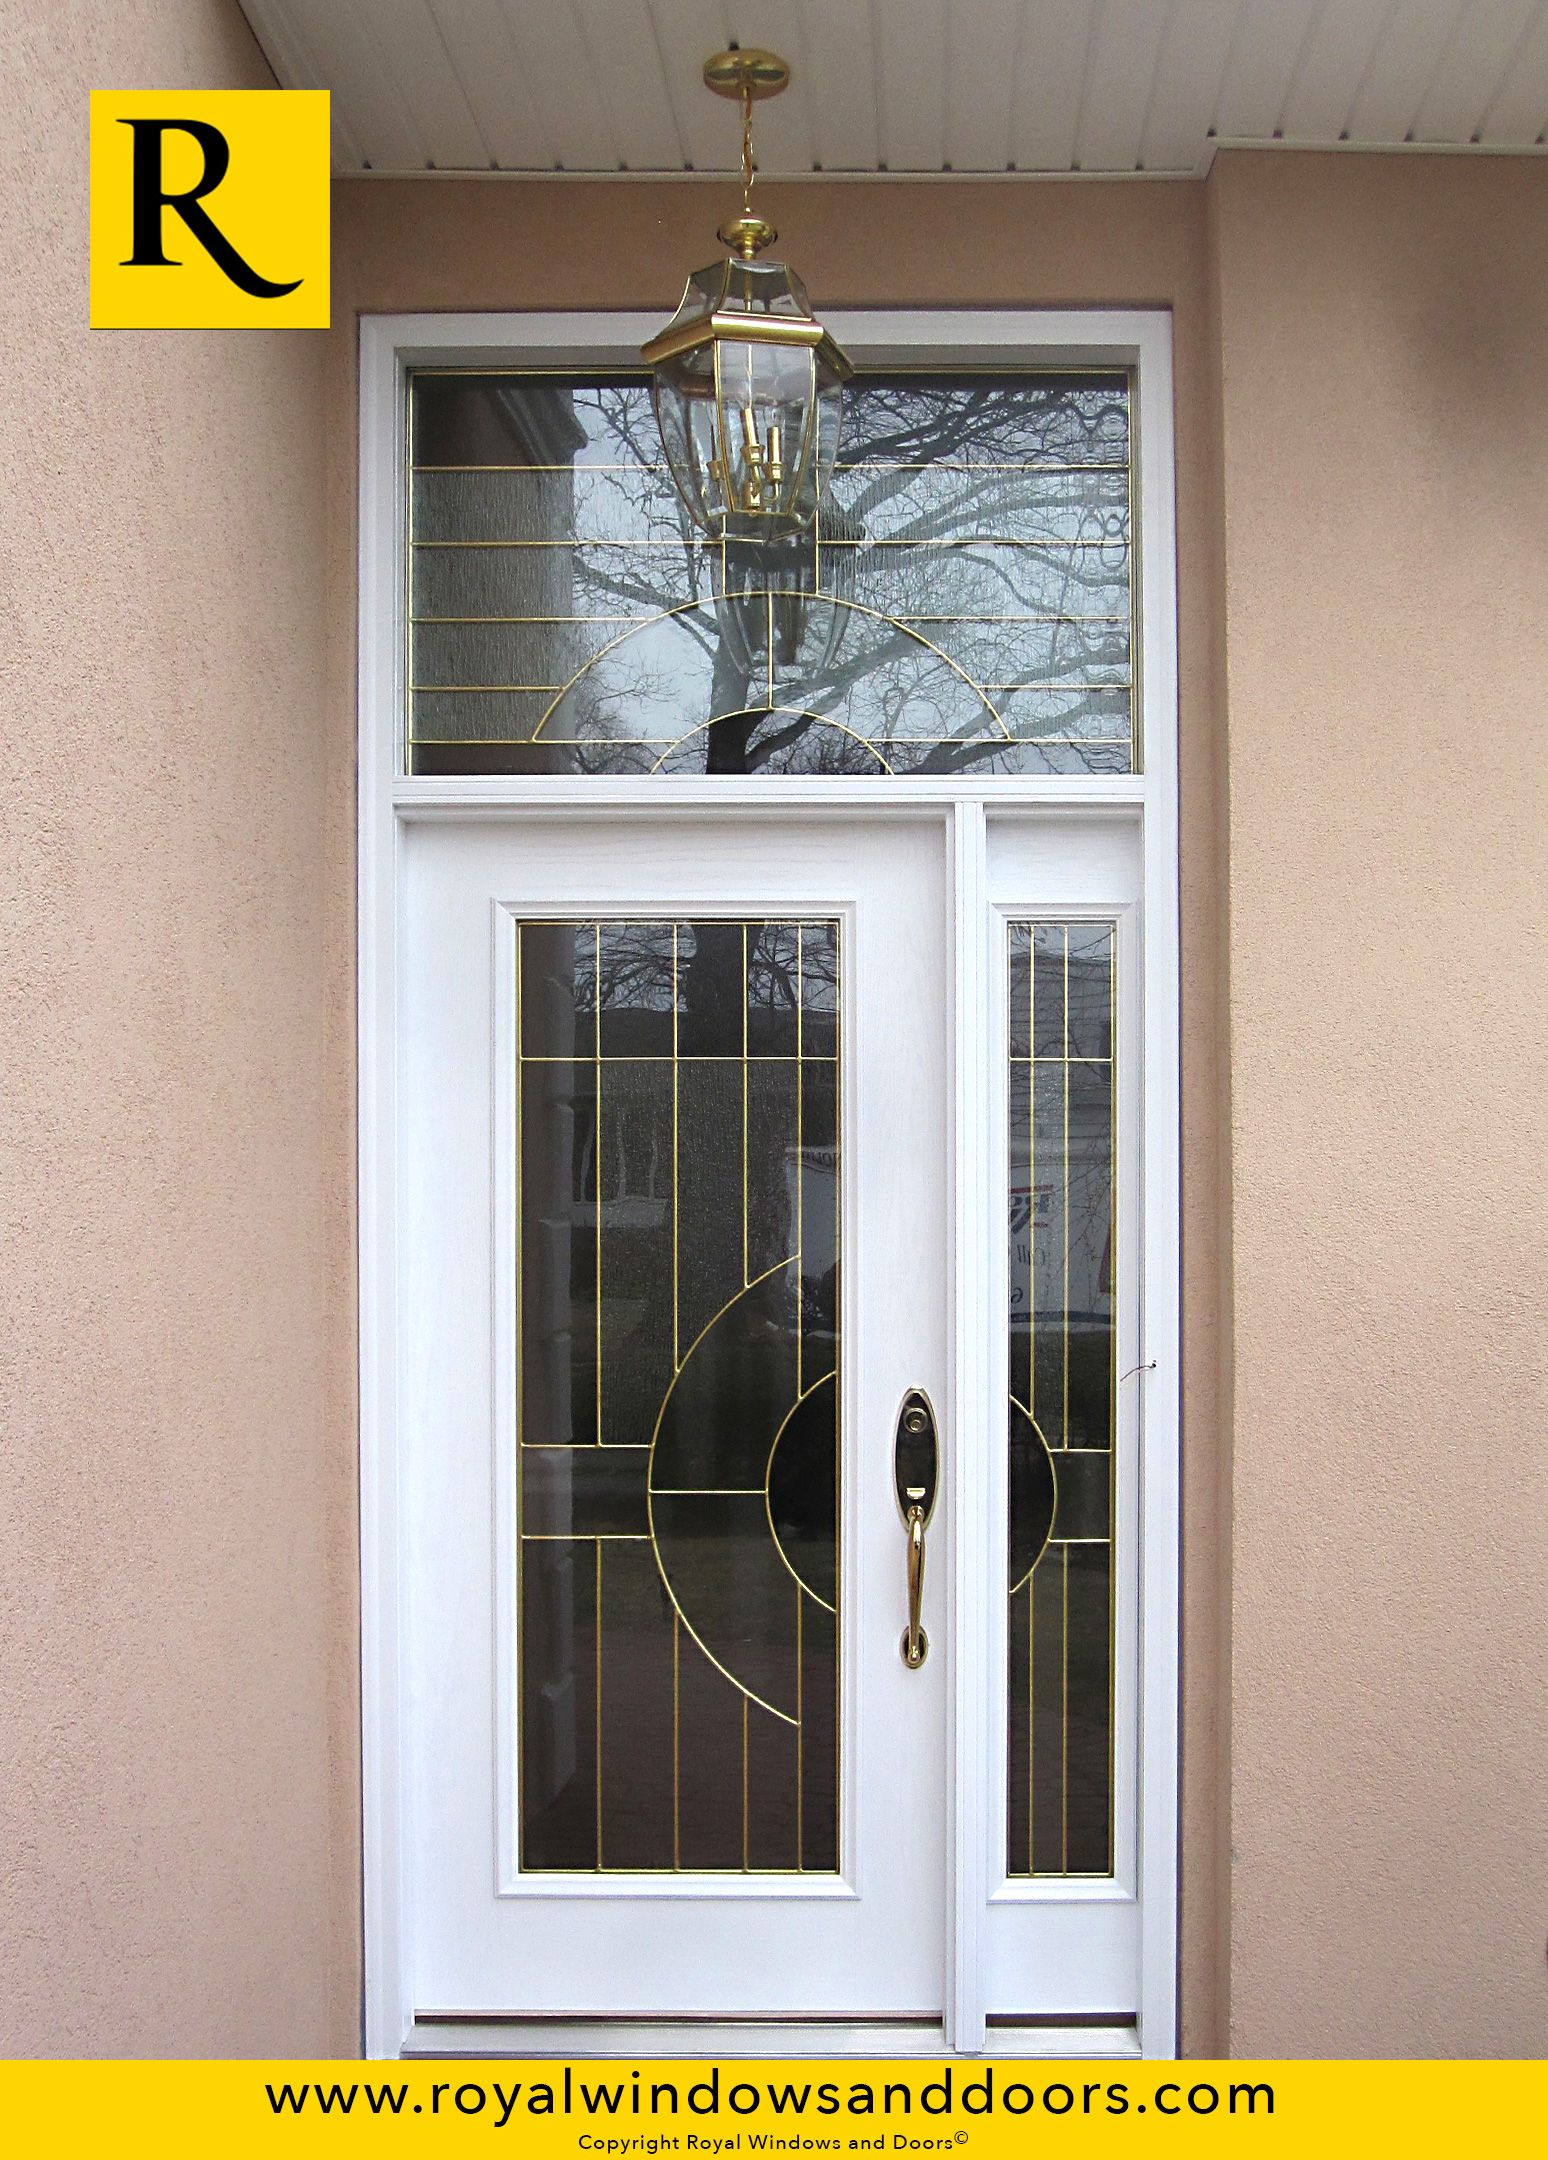 Single Entry Doors single entry door in white color, designer glass , one side lite